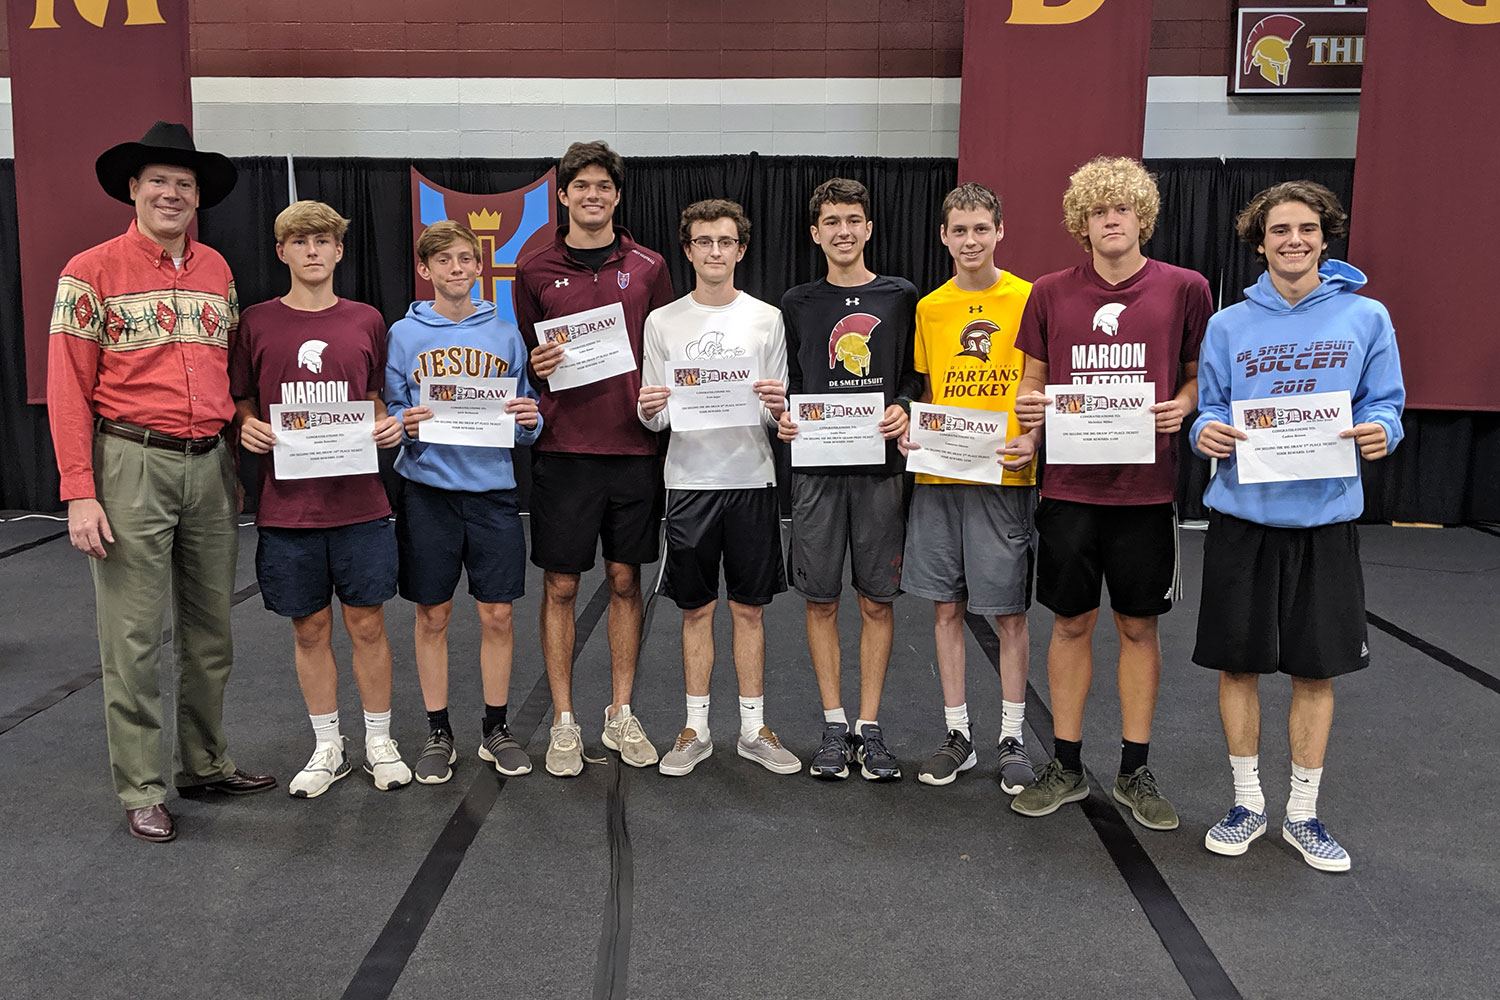 Big Draw Spokesman Gene Bender celebrates with several of the students who sold the winning tickets. They include Justin Roschke '22, Jack Bednarek '22, Luke Bauer '20, Evan Jager '20, Louis Hess '21, Cameron Gibson '21, Nick Miller '20, and Caden Brown '20.